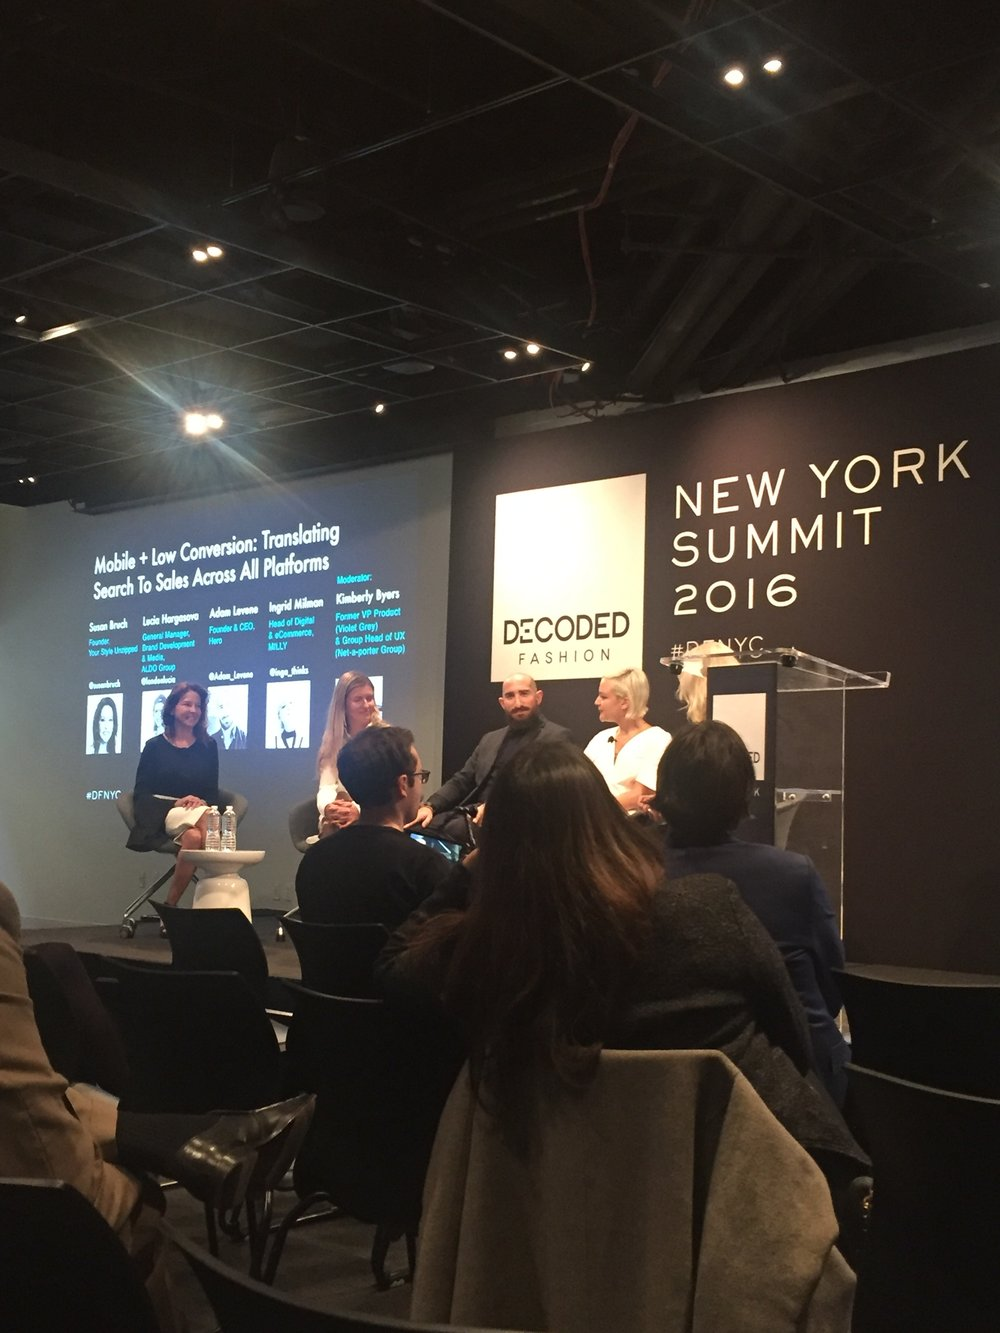 Decode Fashion NYC Summit